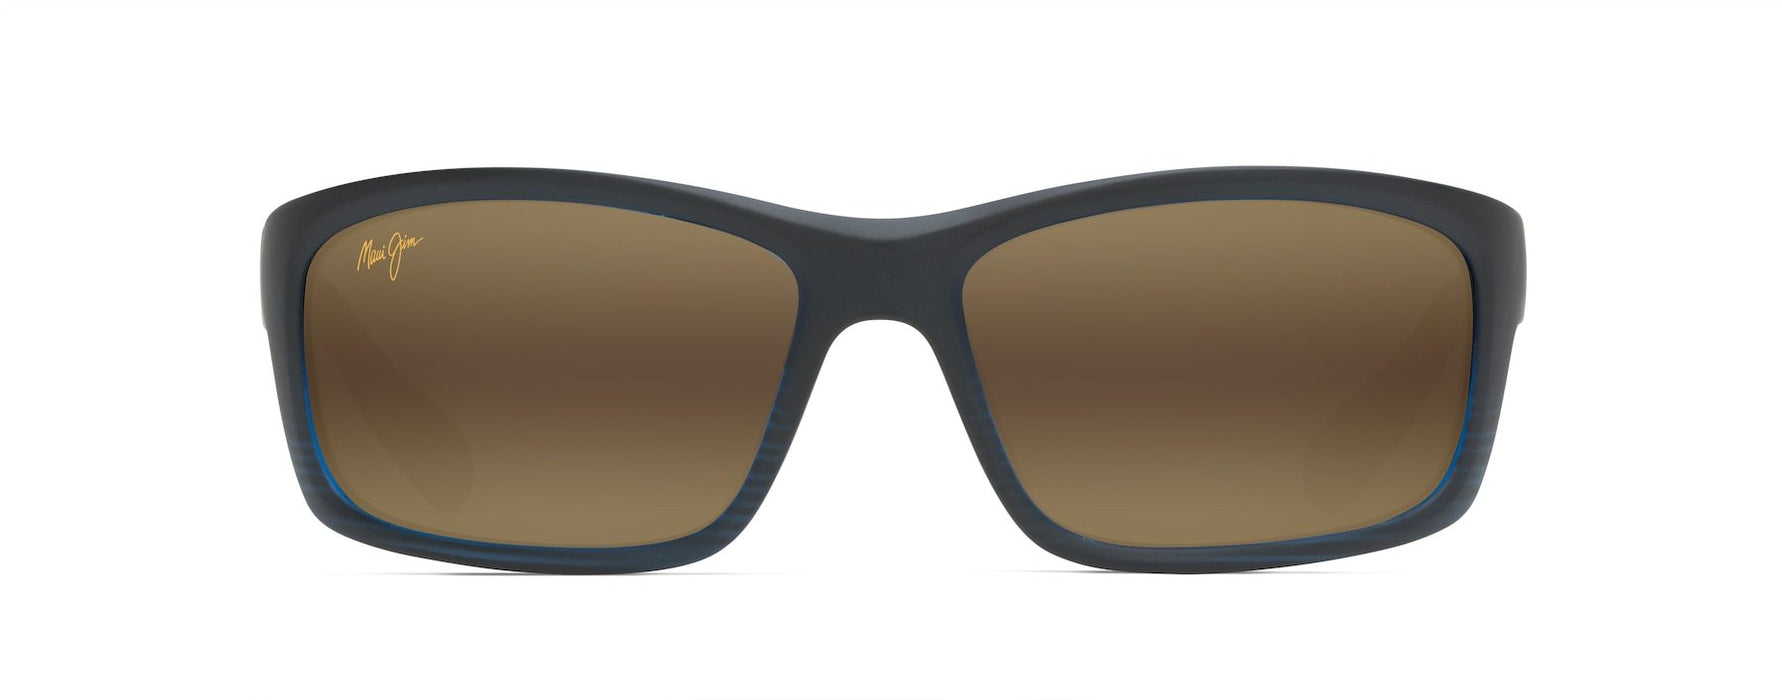 MyMaui Kanaio Coast MM766-015 Sunglasses